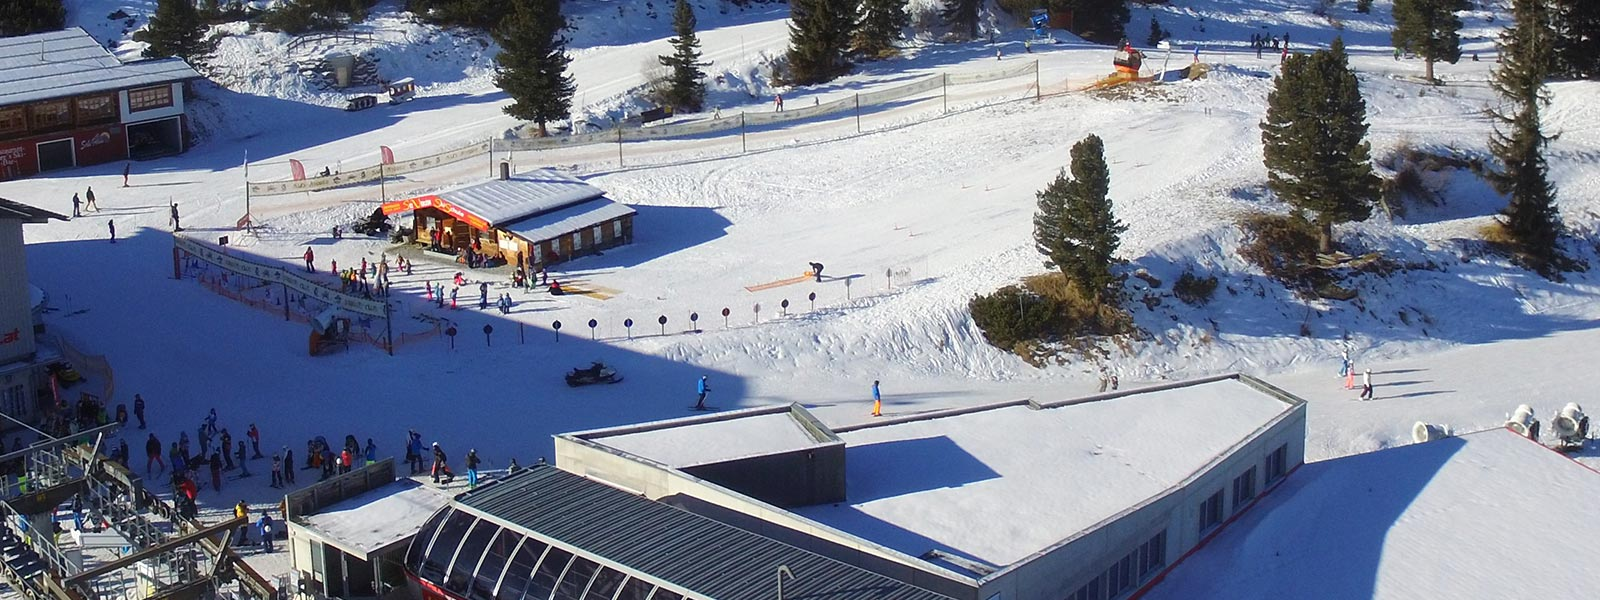 The Hochzillertal Ski School